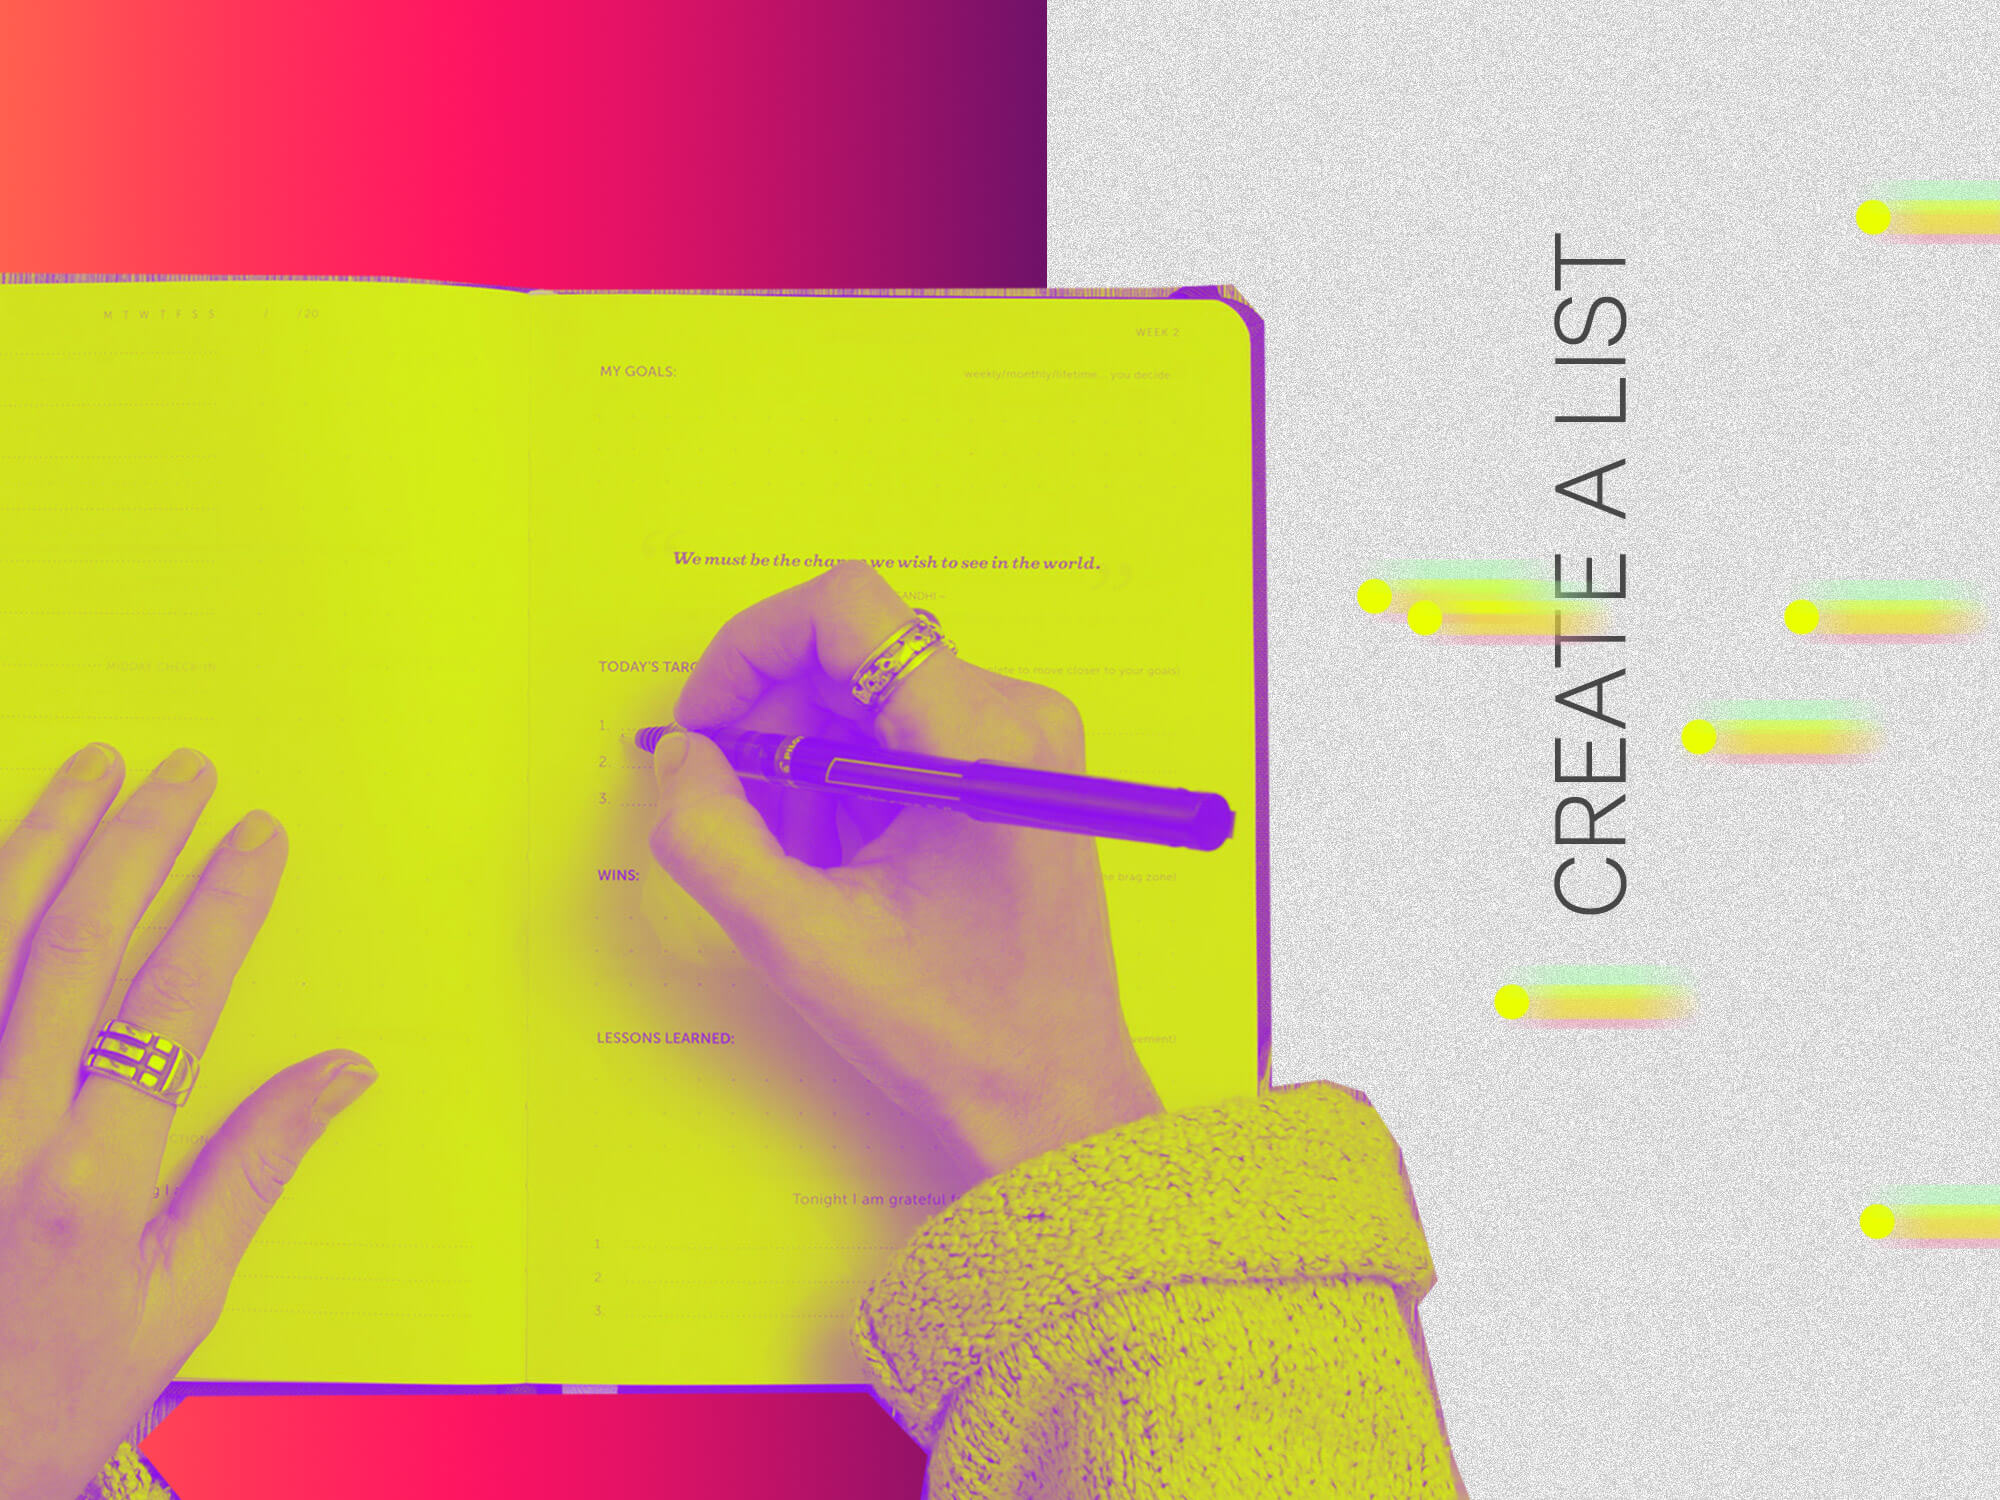 Get More Freelance Clients Using Social Media - Create a List of Ideal Clients